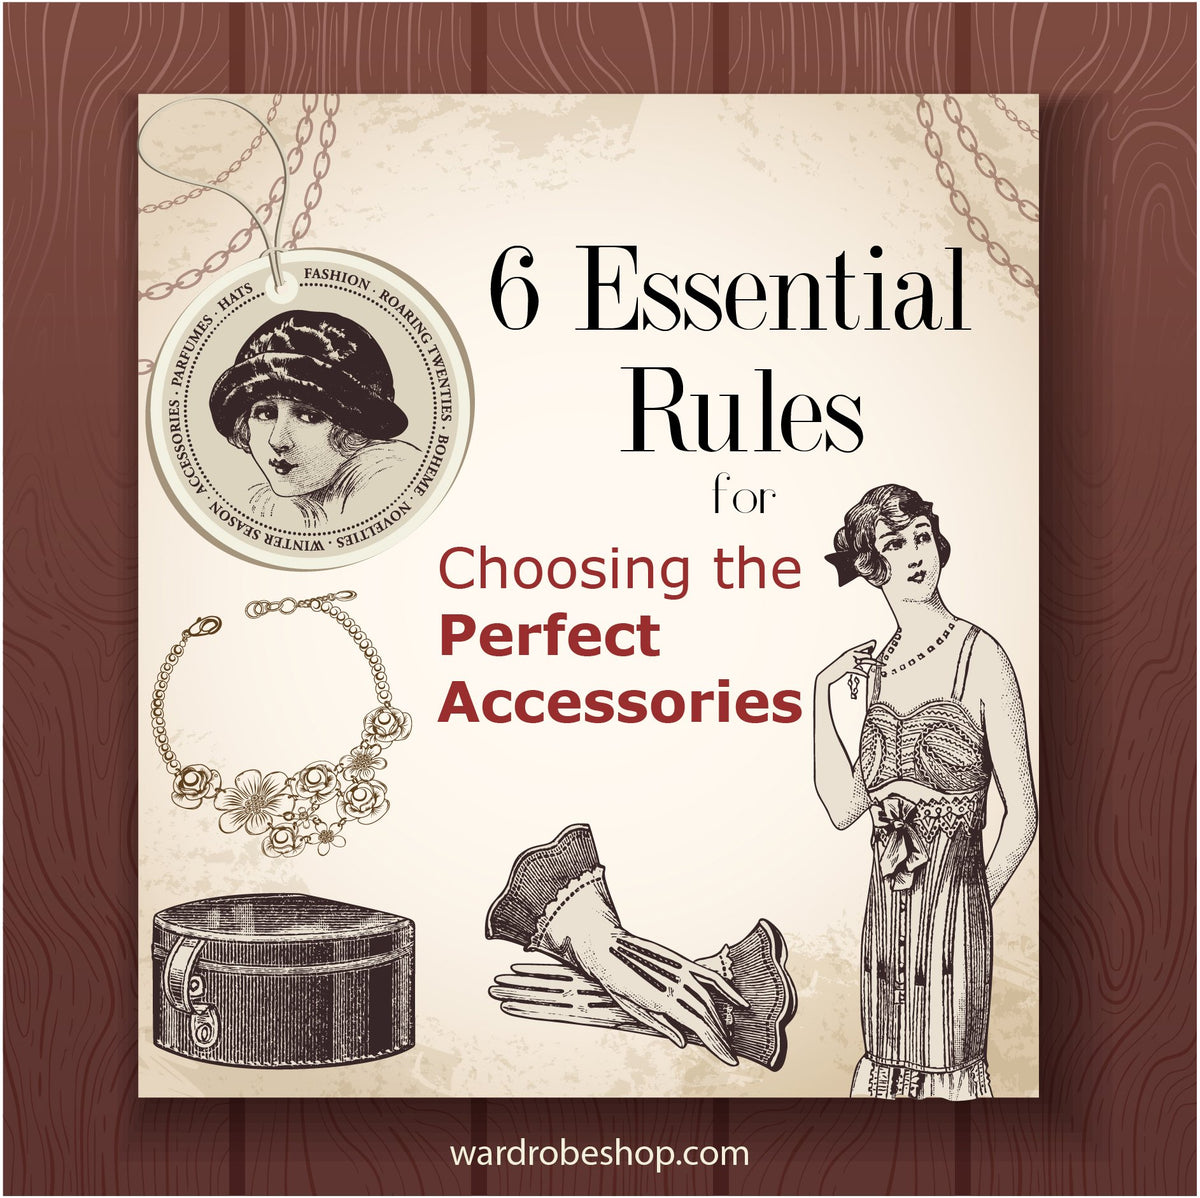 6 Essential Rules for Choosing the Perfect Accessories